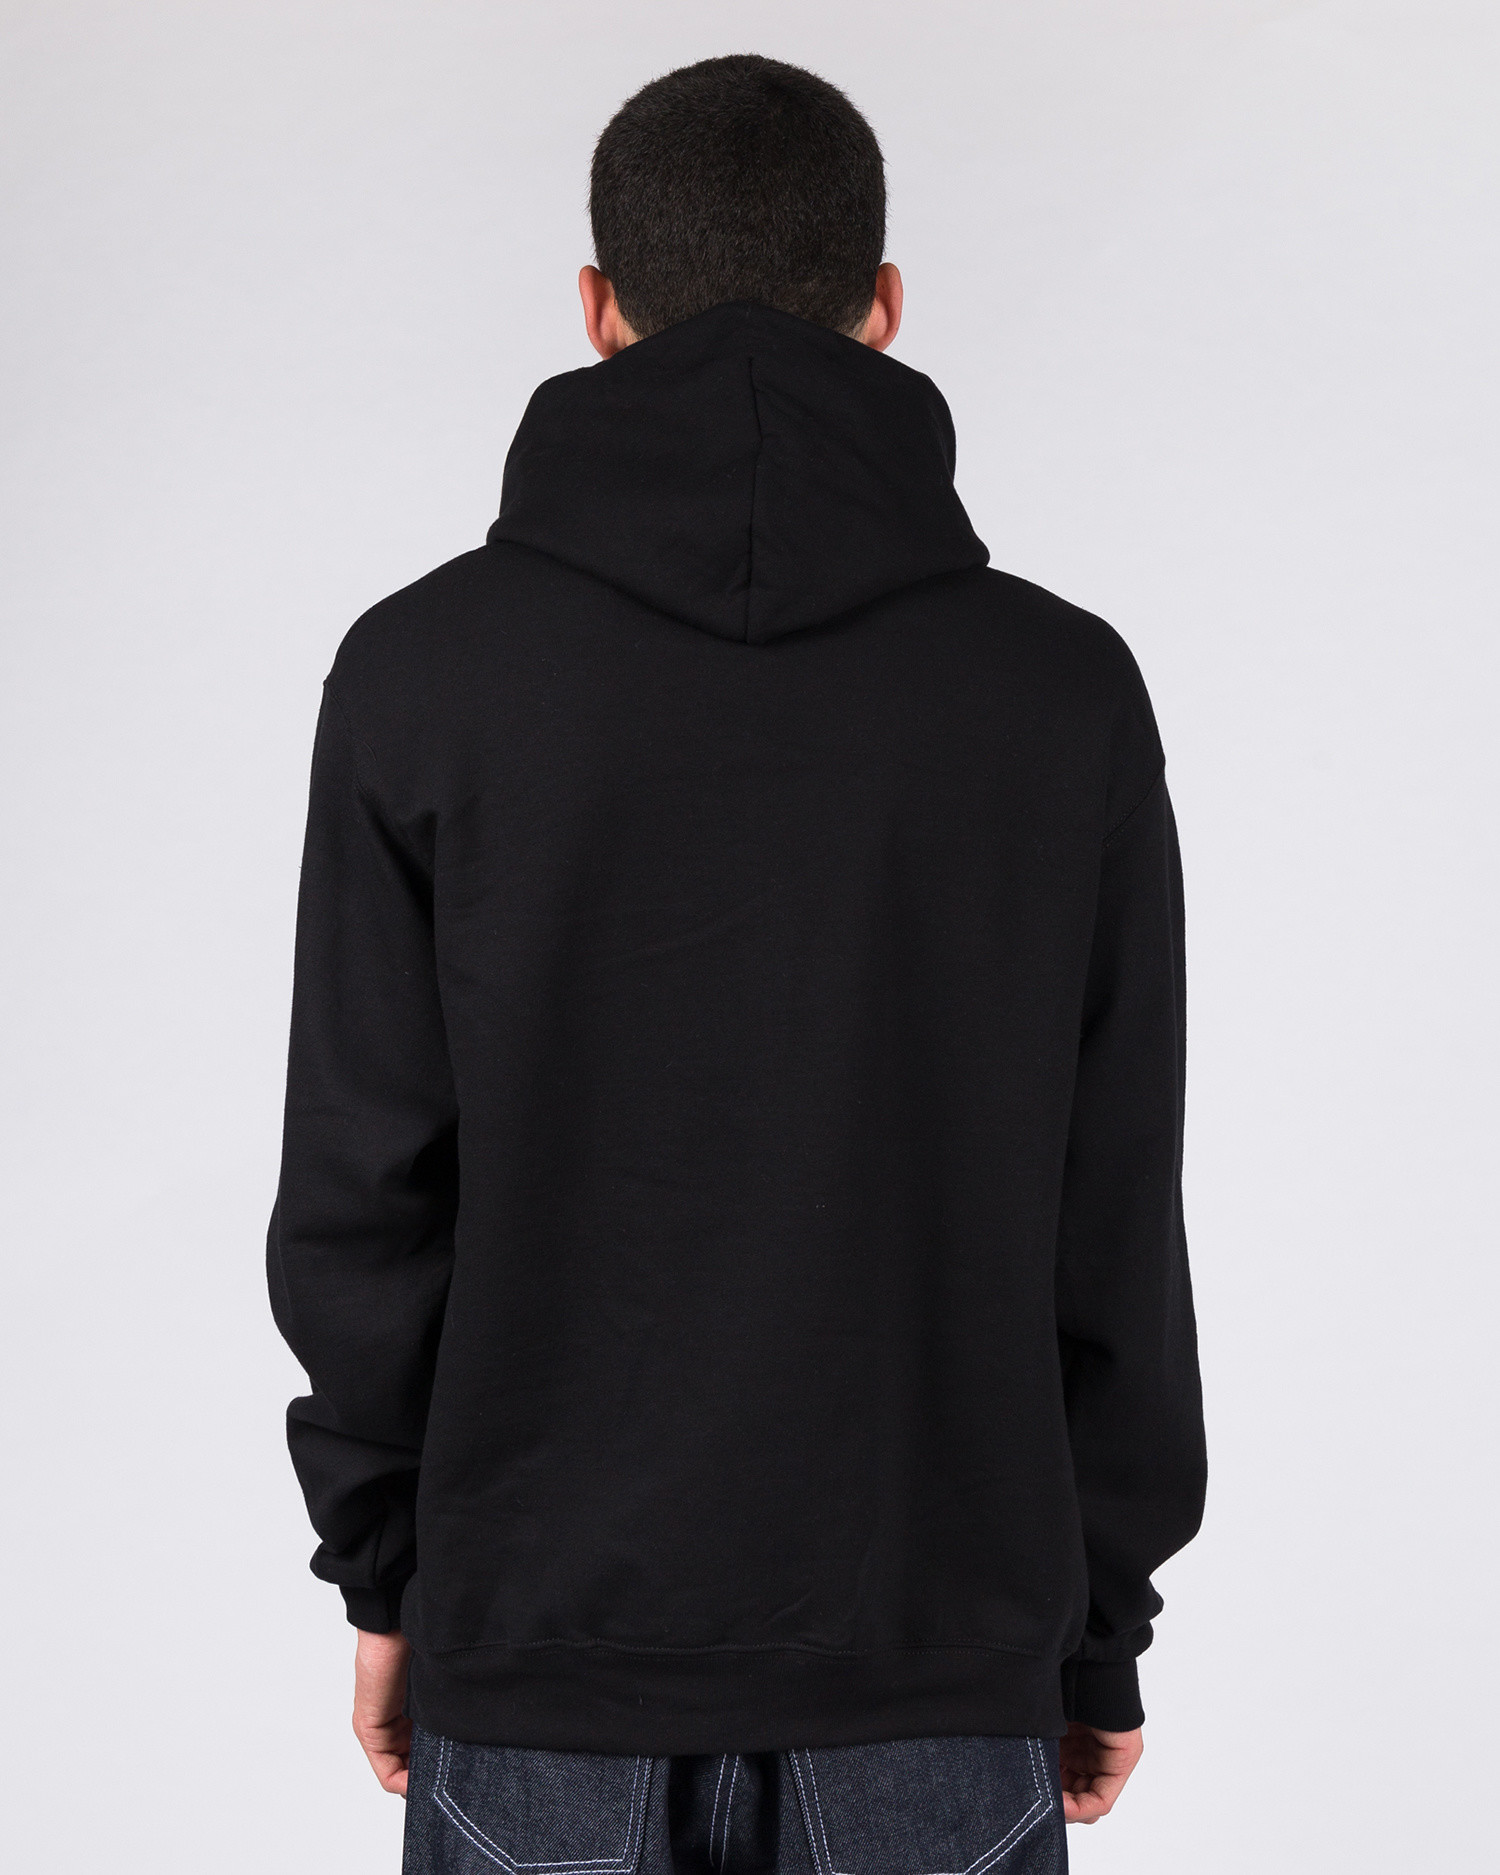 Hotel Blue Embroidered Logo Champion Hoodie Black